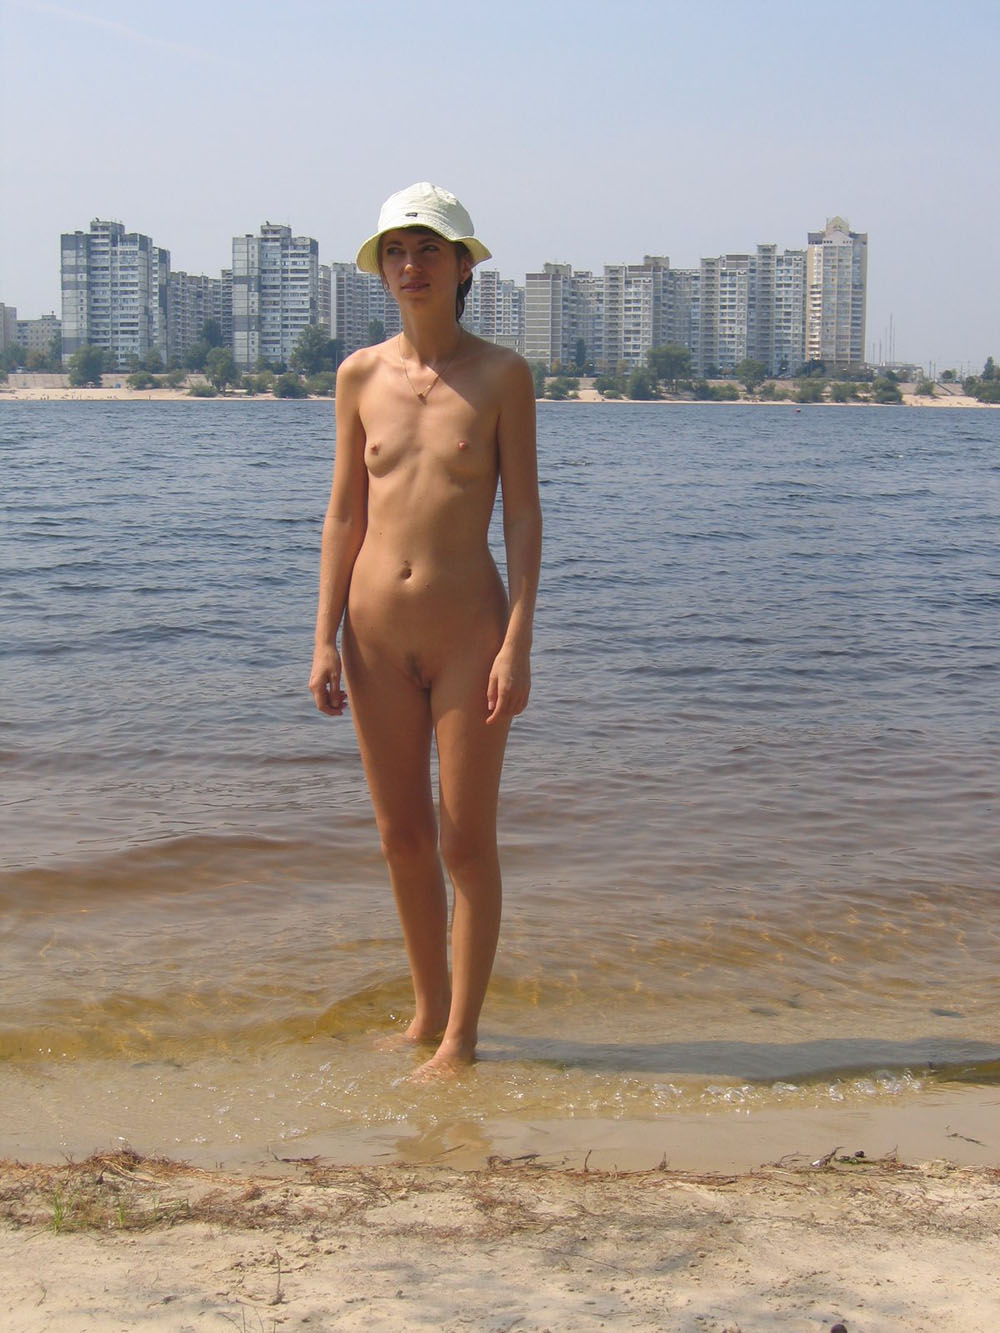 Small tits naked body babe on a nudist beach show her furry pussy stripe and excited pokies